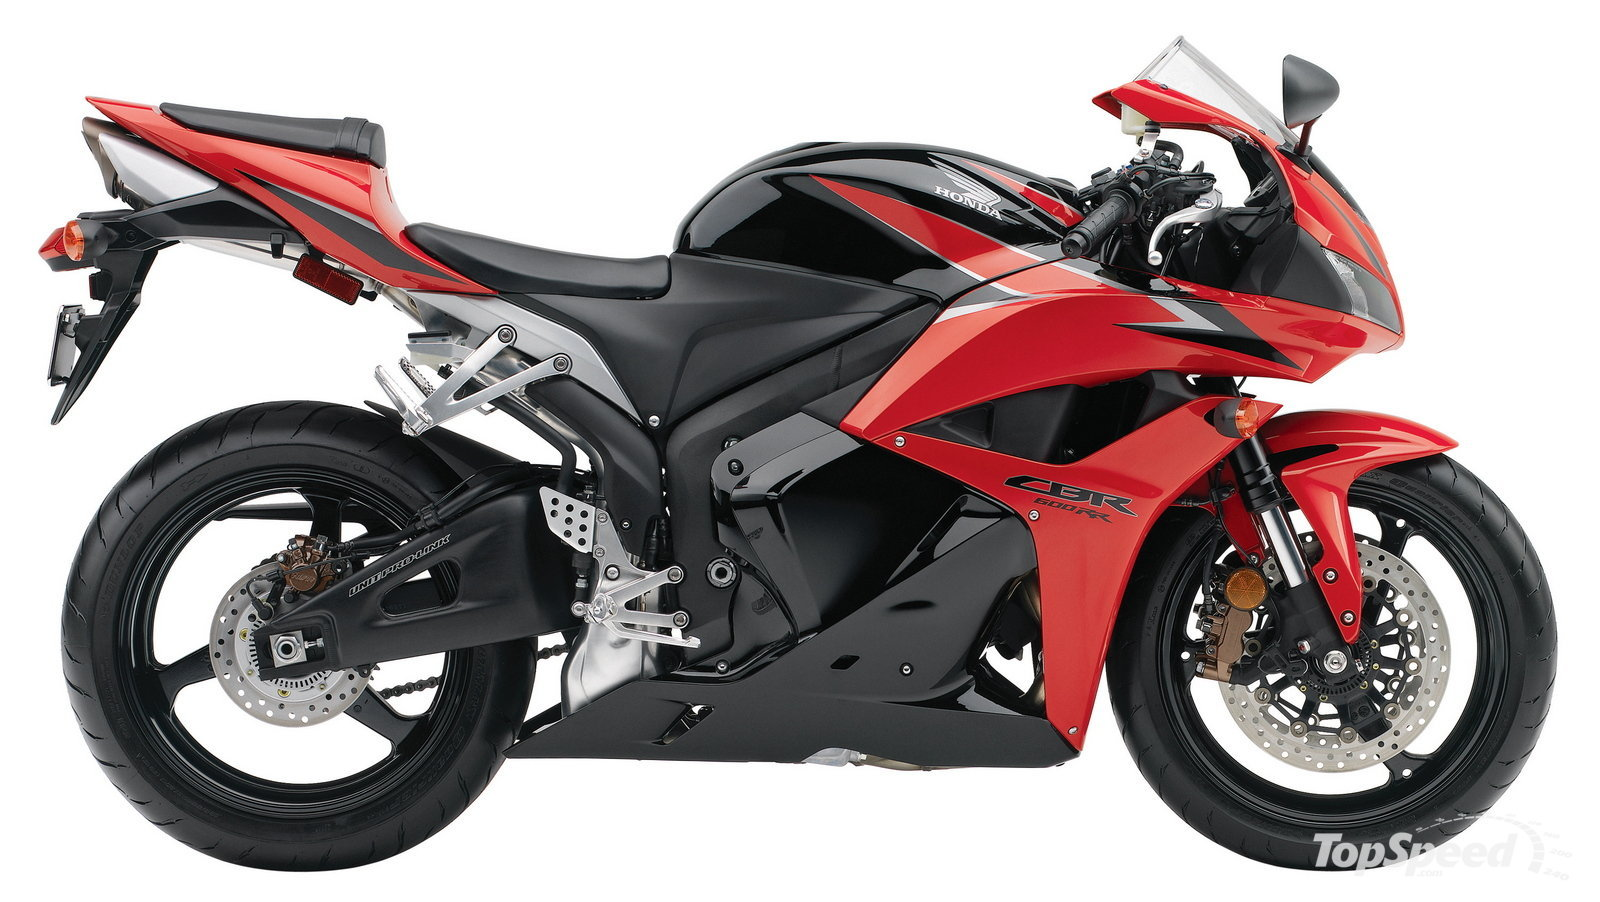 2009 honda cbr600rr abs review top speed. Black Bedroom Furniture Sets. Home Design Ideas